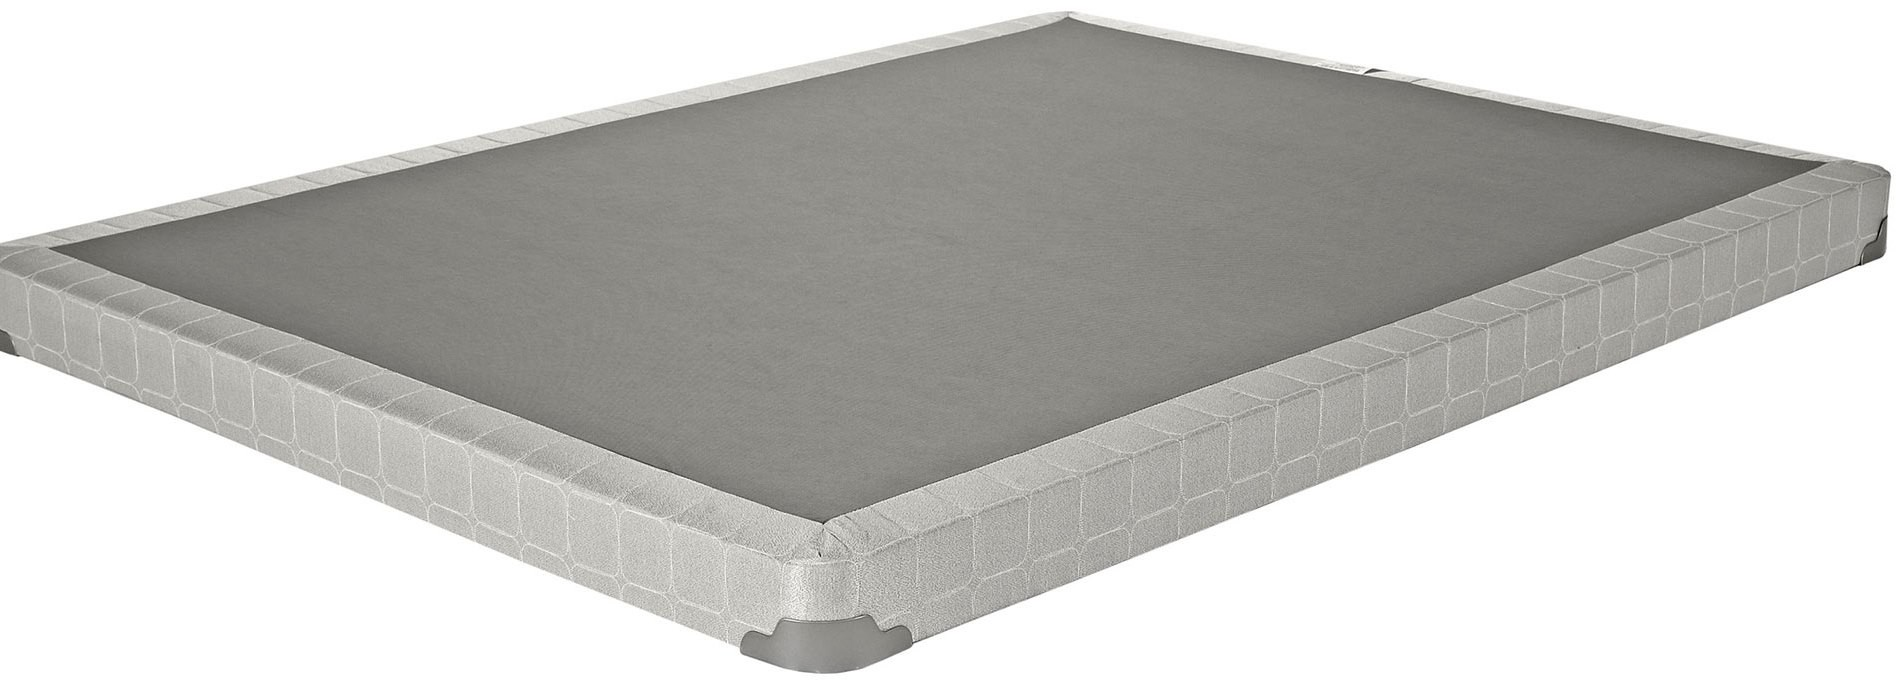 Low Profile Box Spring Fundamentals Explained